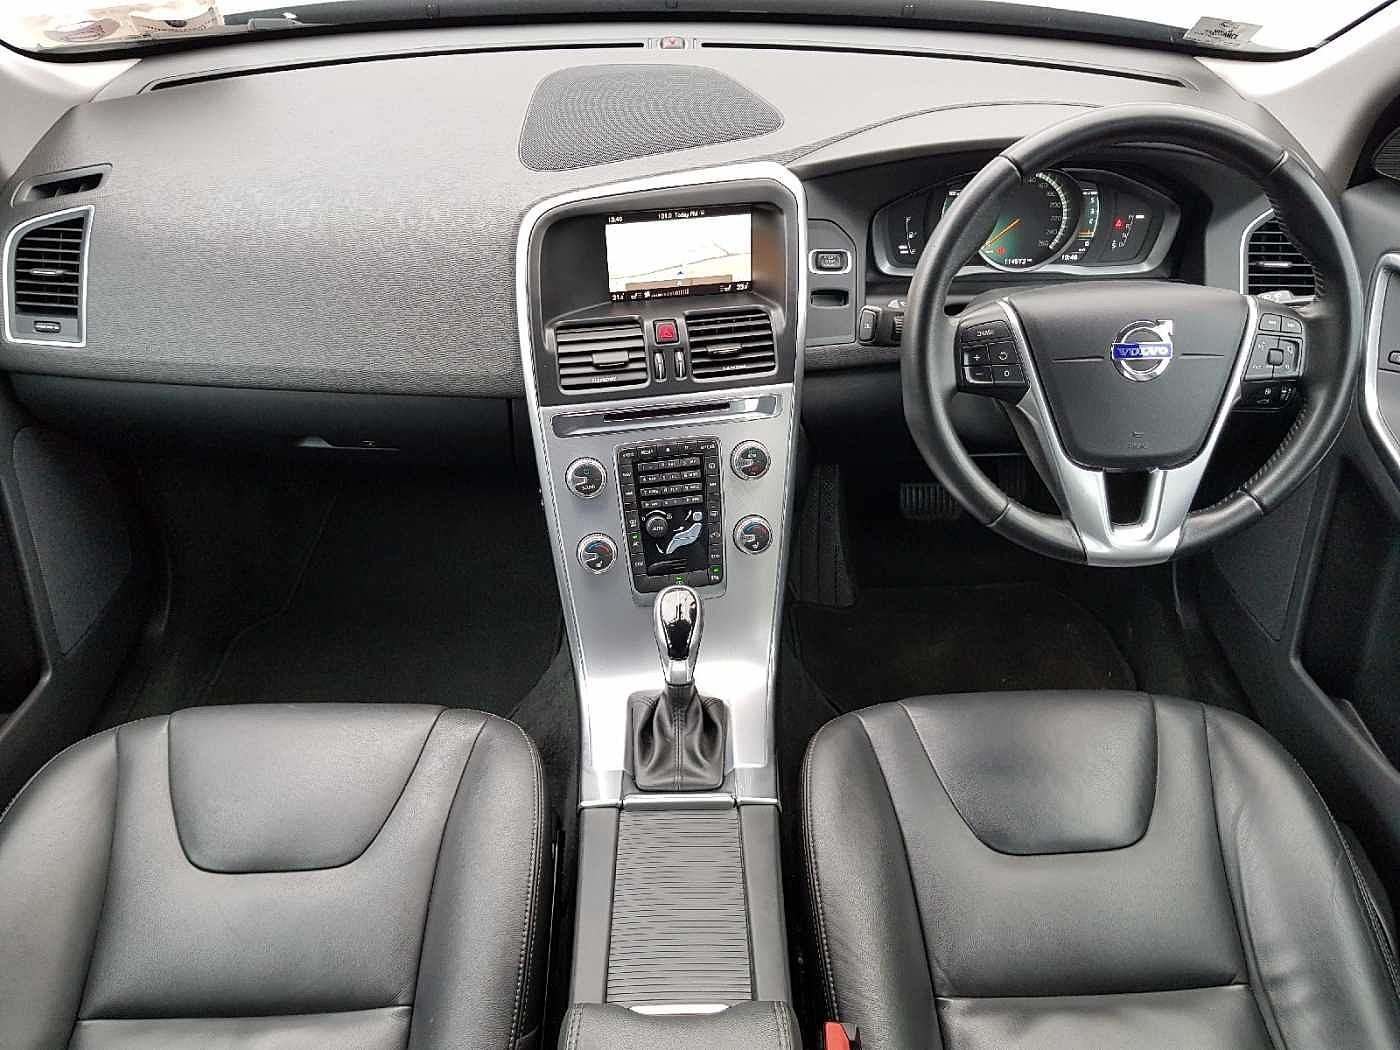 Volvo  D4 SE Automatic (Heated Screen, Heated Seats, Rear Camera, Front Sensors)